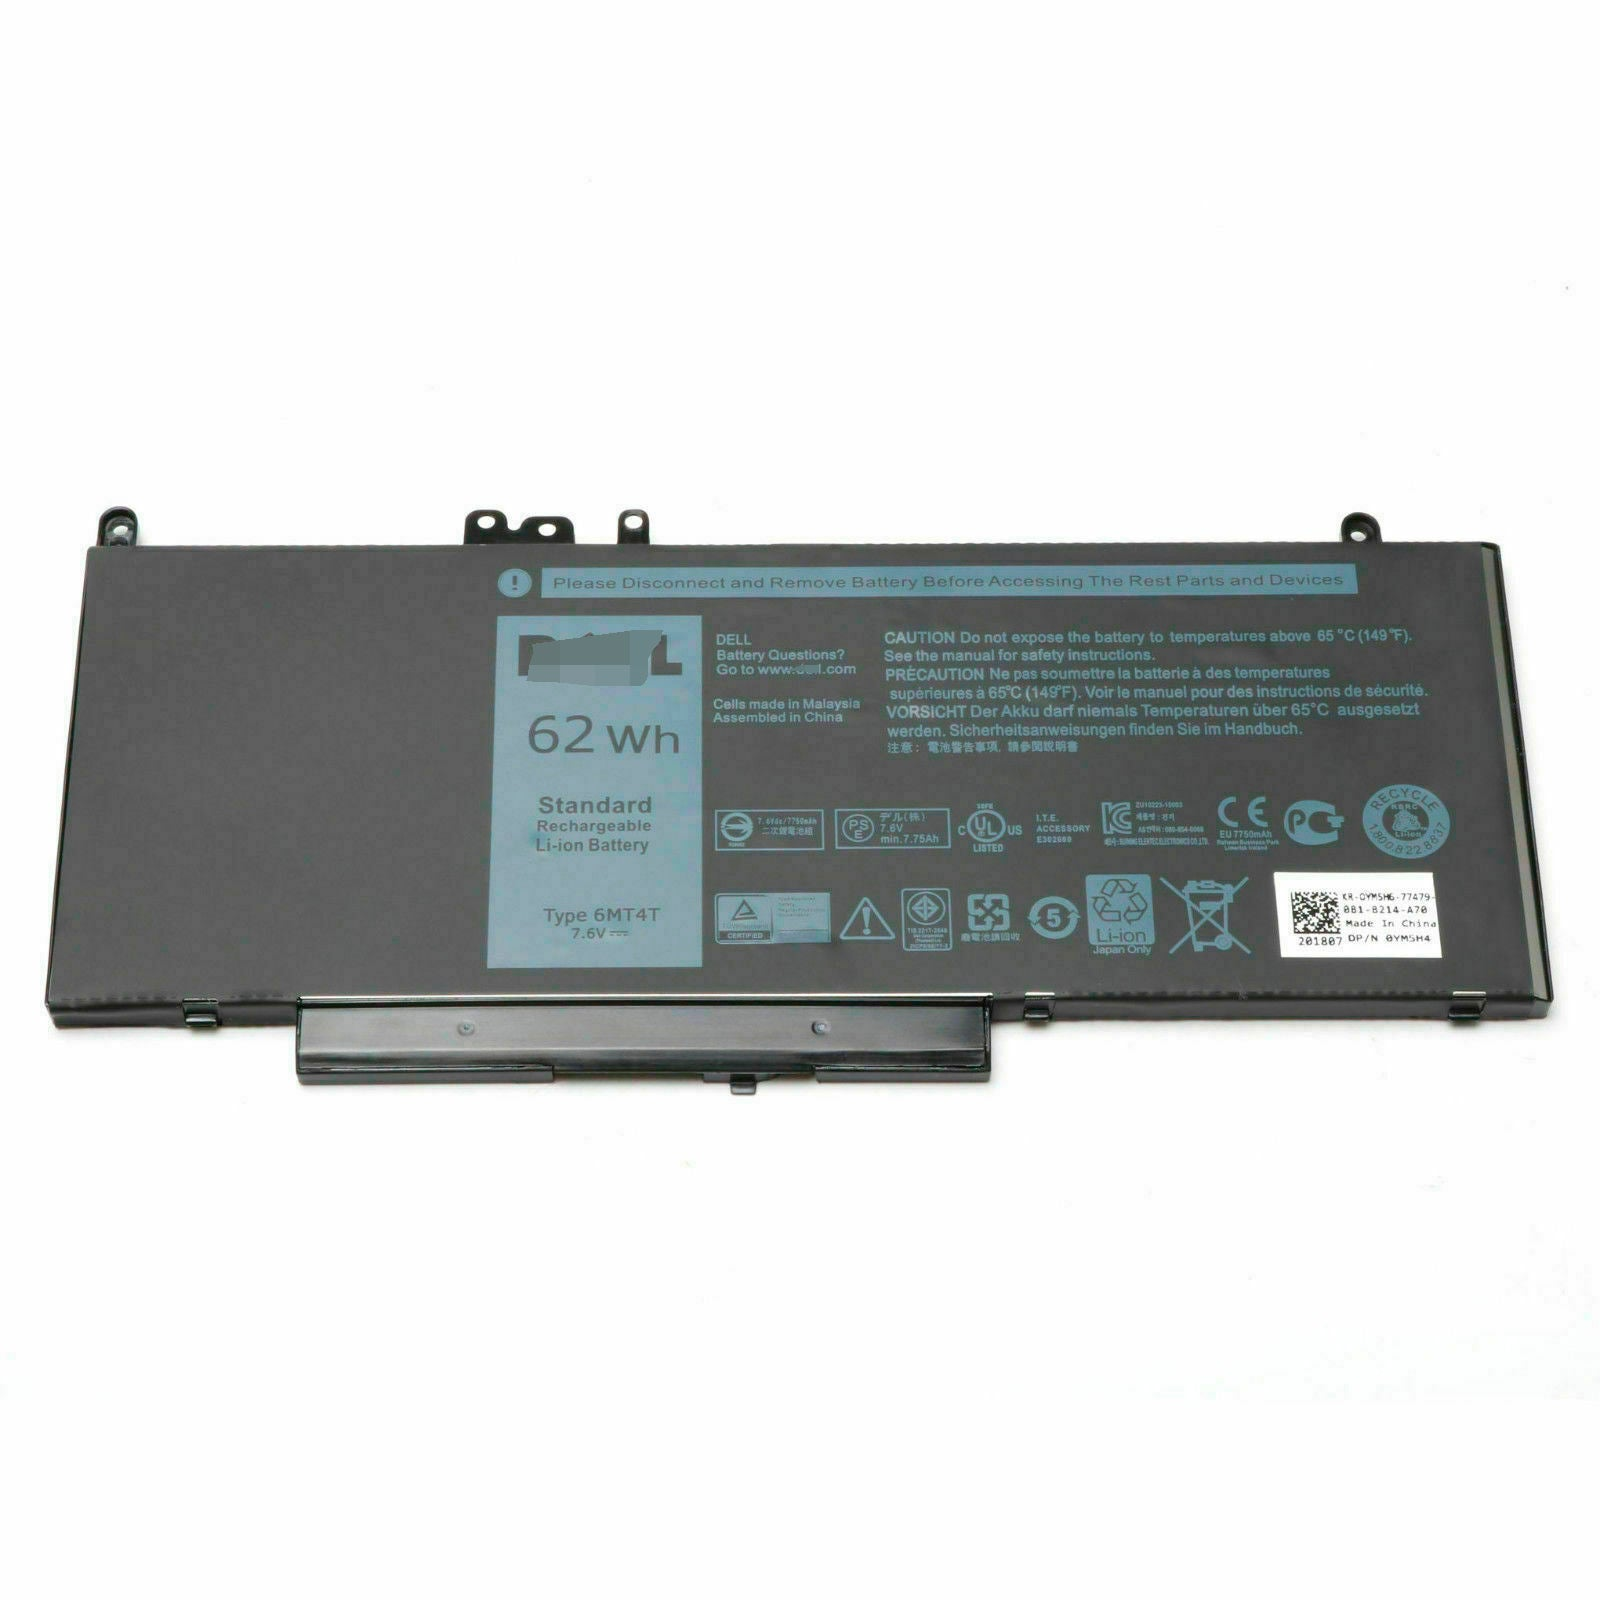 6MT4T 62Wh Battery For Dell Latitude 14 E5470 E5450 Latitude 15 5000 Series